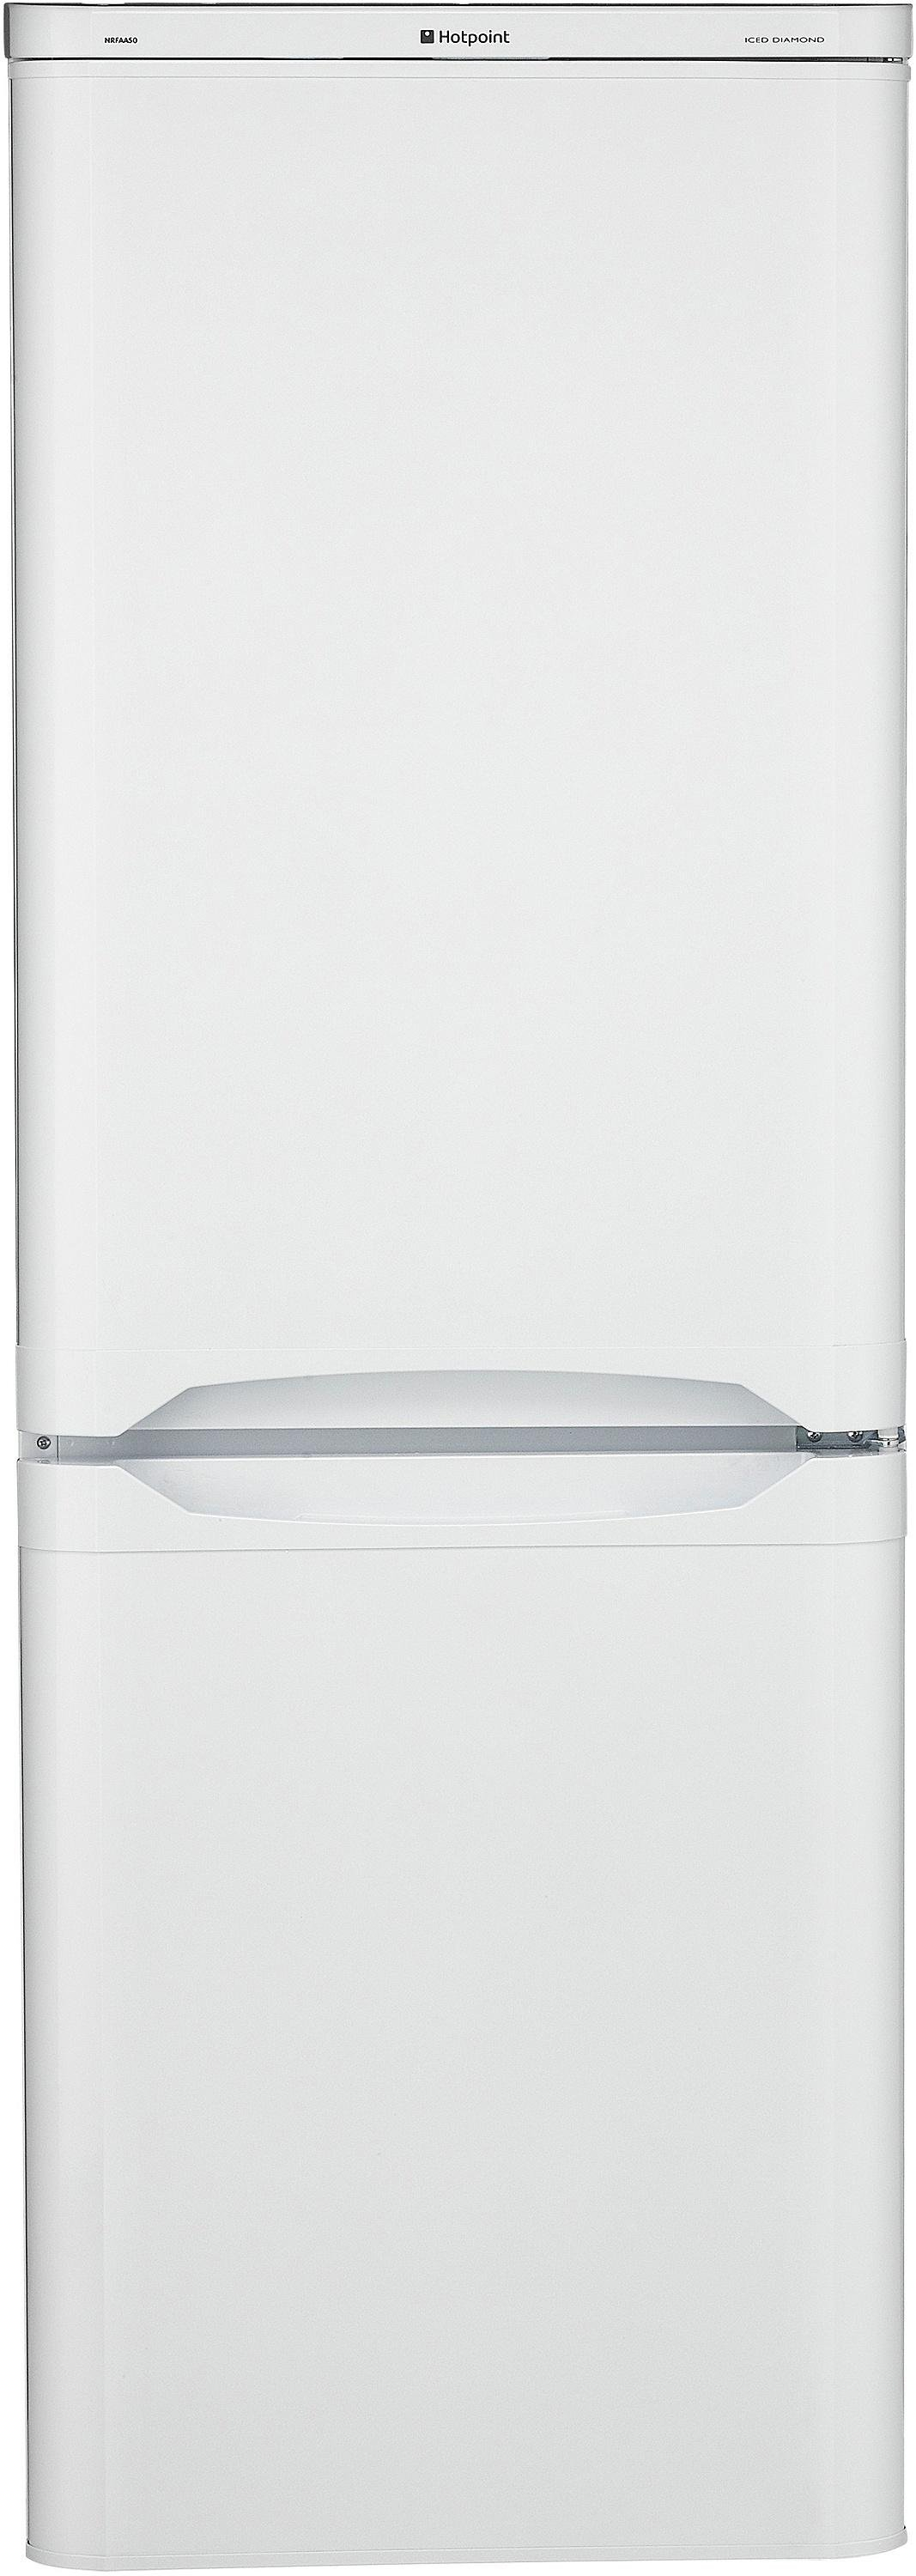 Hotpoint NRFAA50P First Edition Fridge Freezer - White